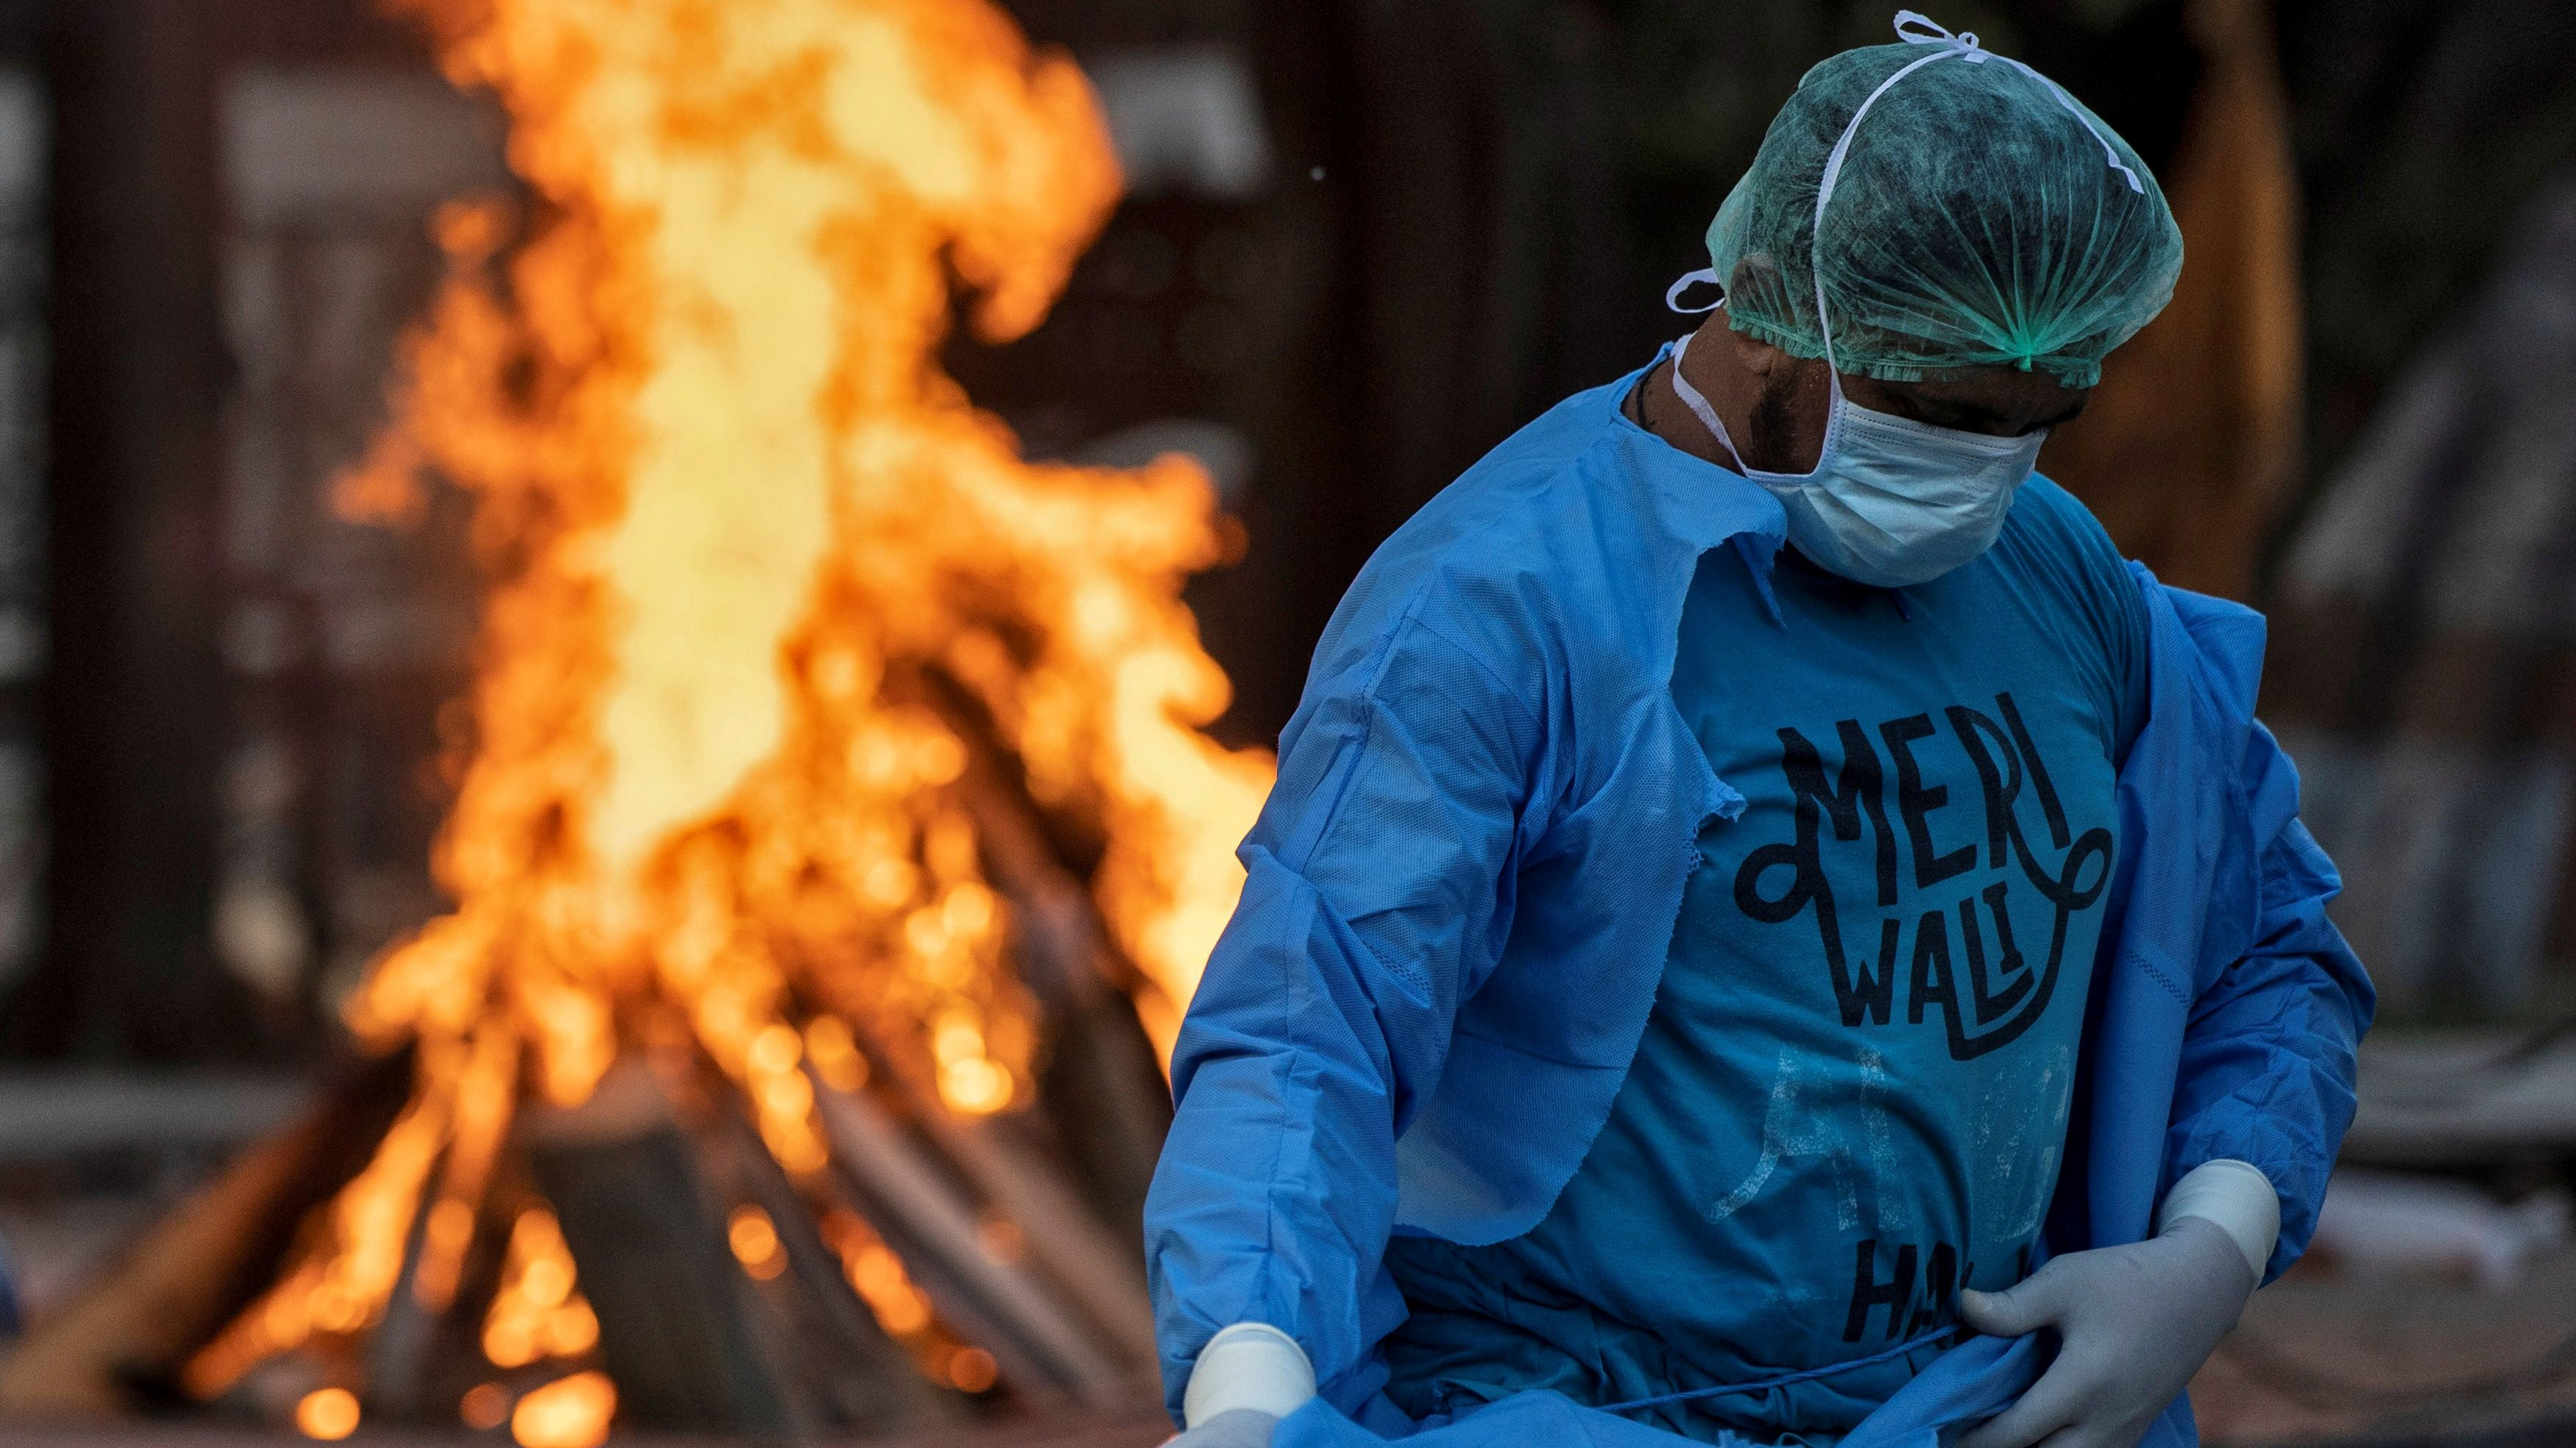 Mohammad Aamir Khan, an ambulance driver, changes his personal protective equipment (PPE) as a woman who died due to the coronavirus disease (COVID-19), is cremated at a crematorium in New Delhi